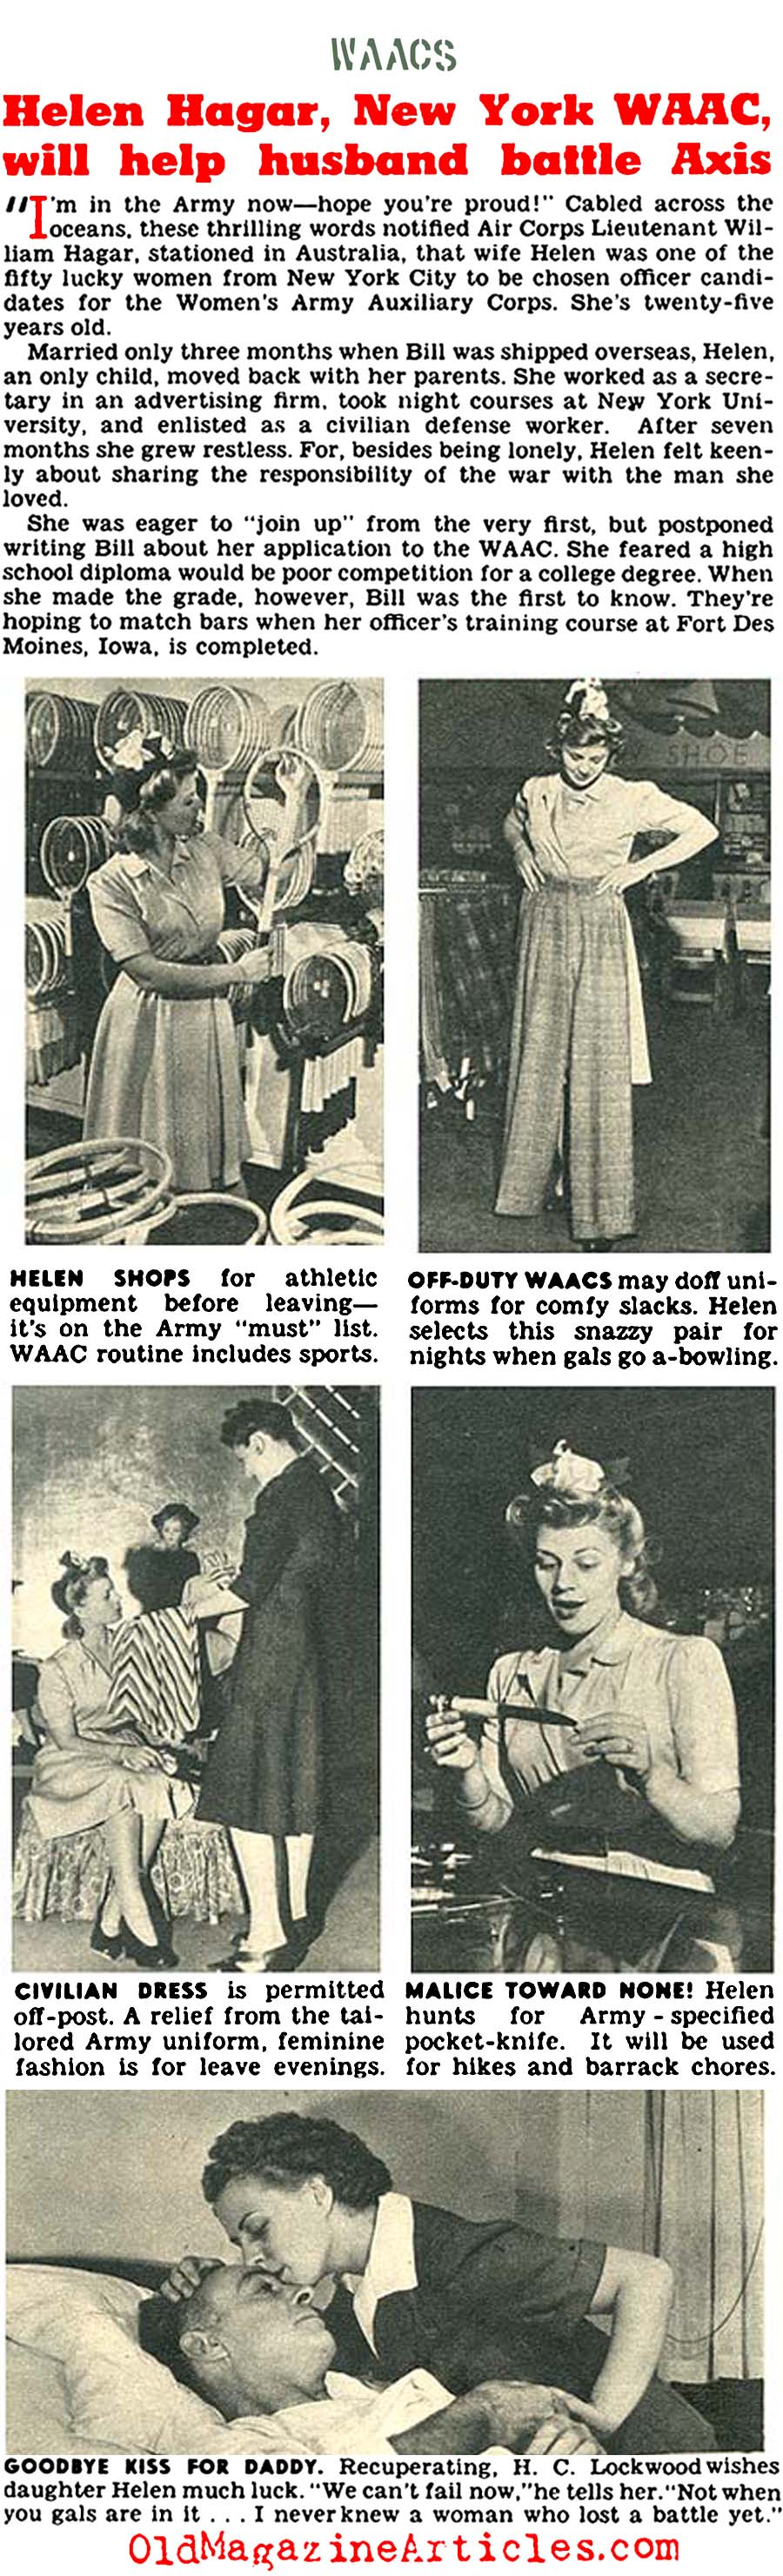 ''What Kind of Women are the WAACs?'' (Click Magazine, 1942)